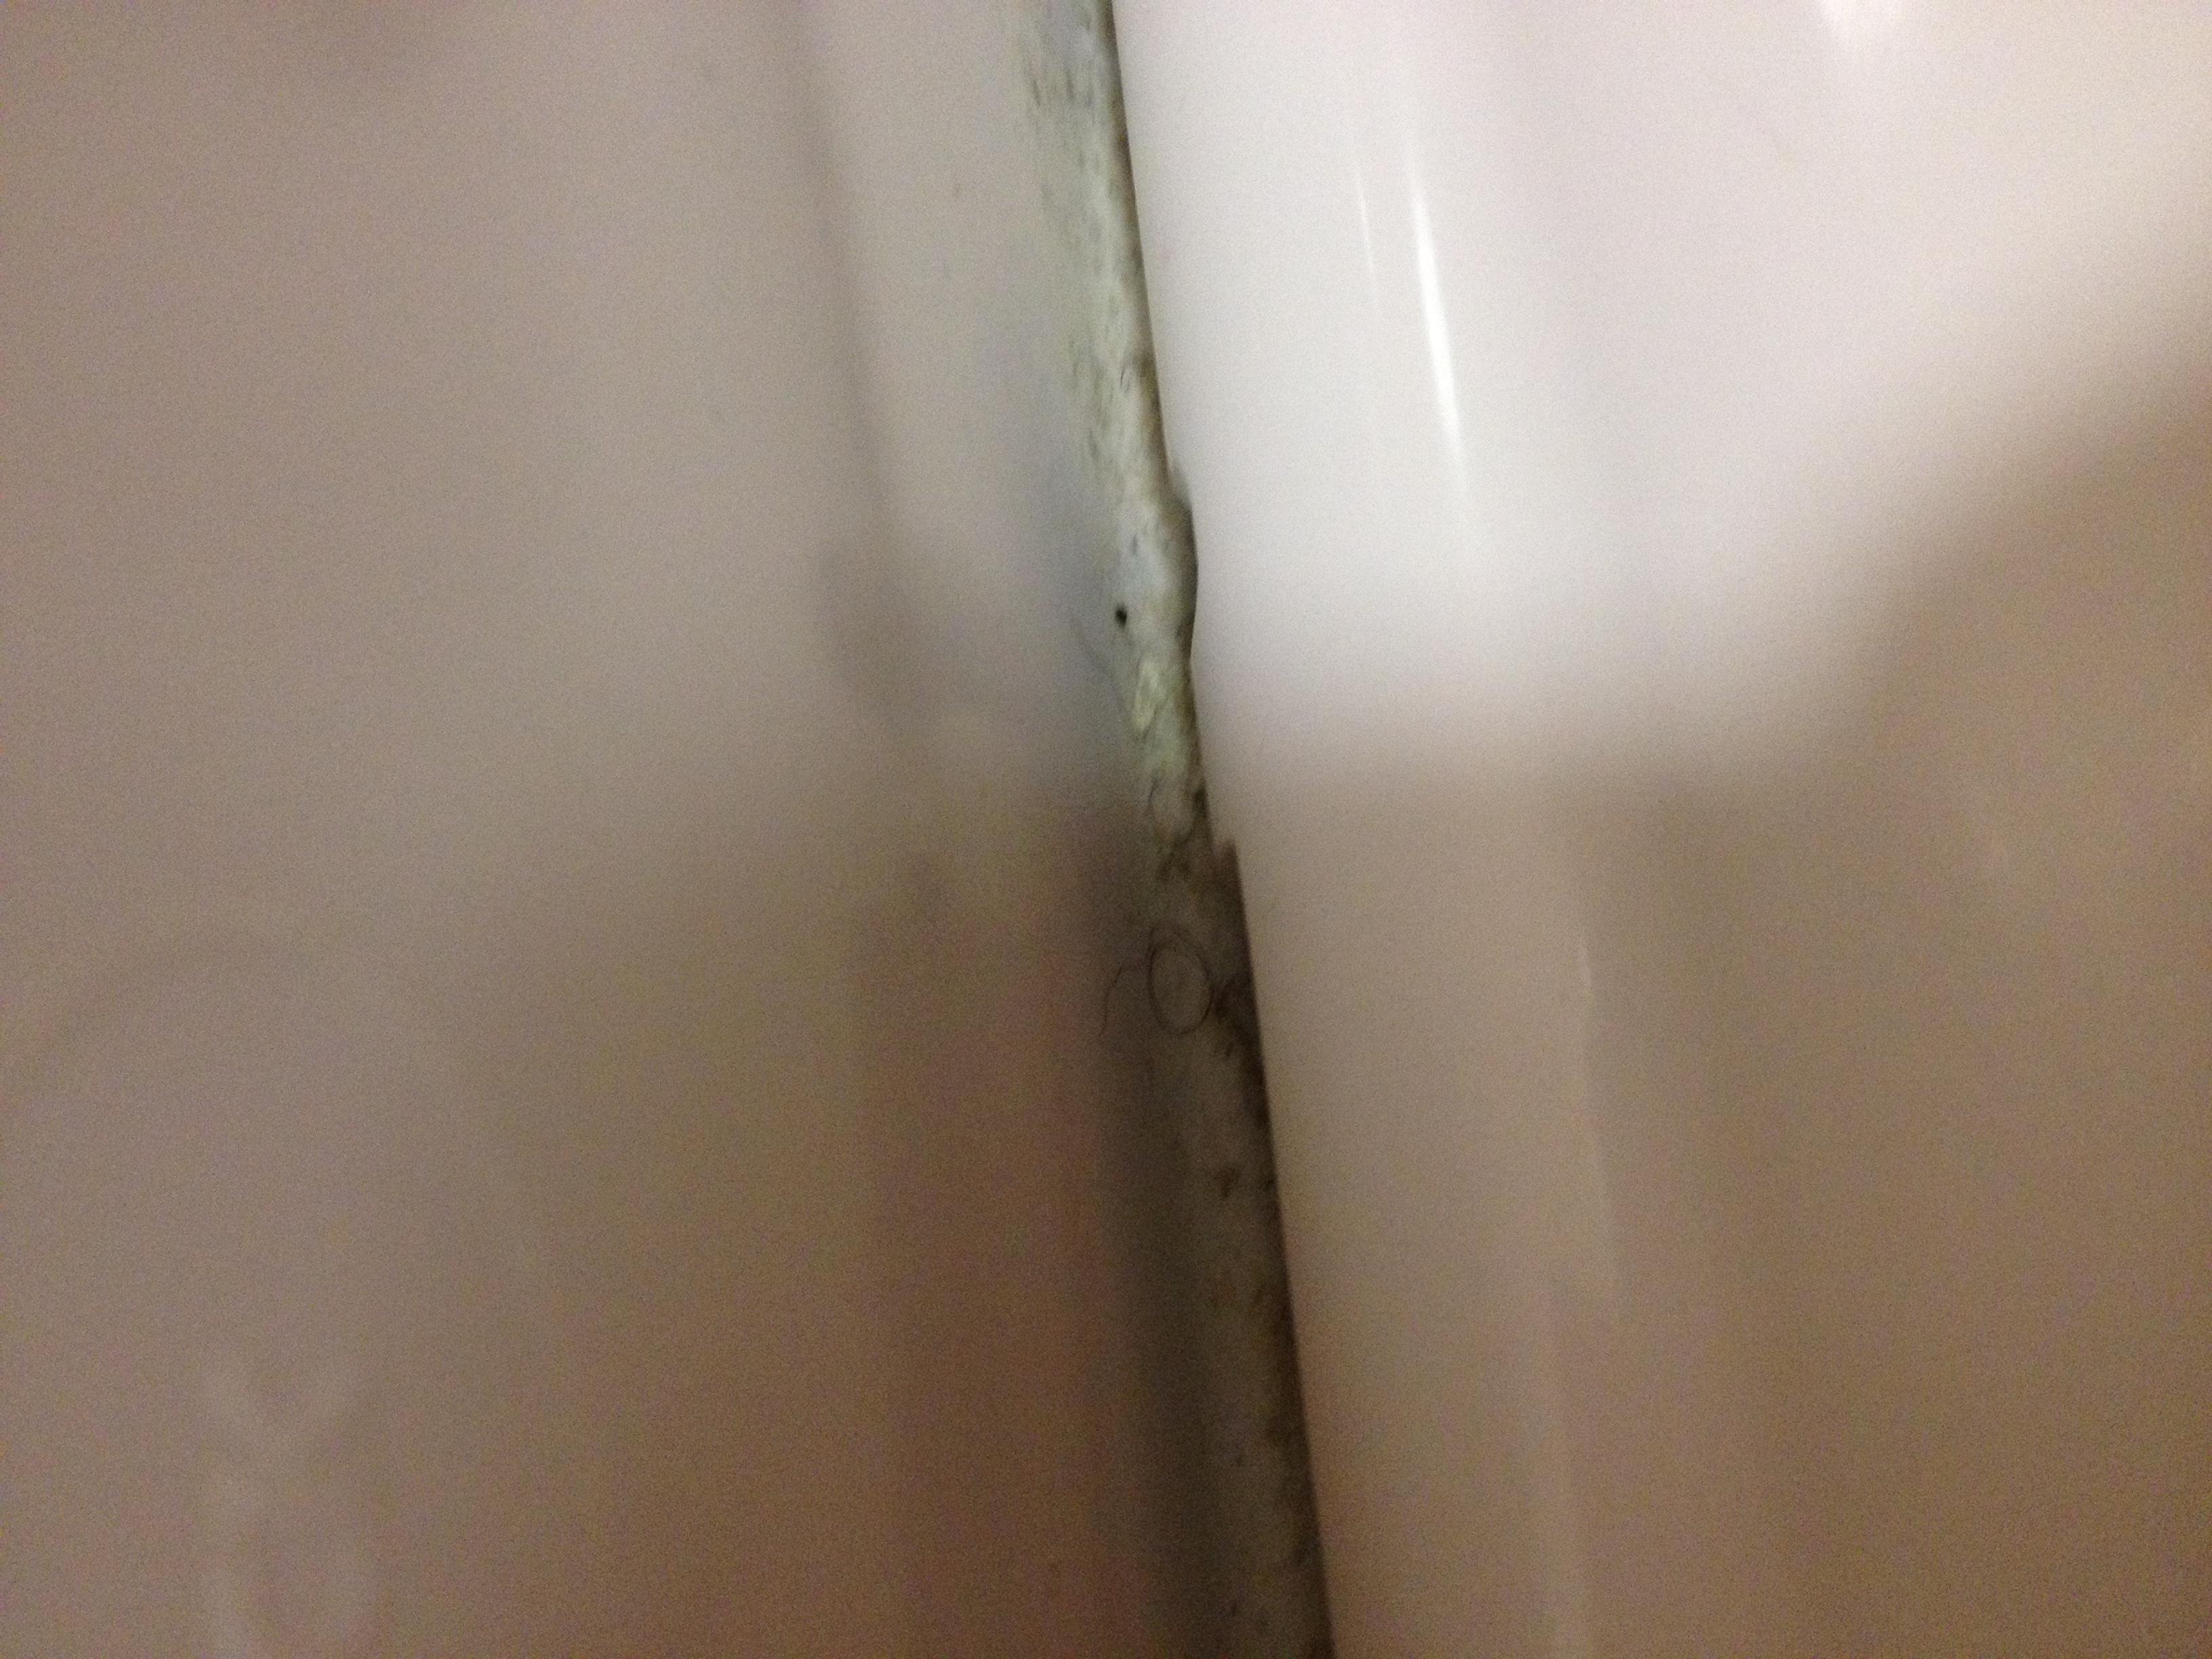 Behind the toilet seat